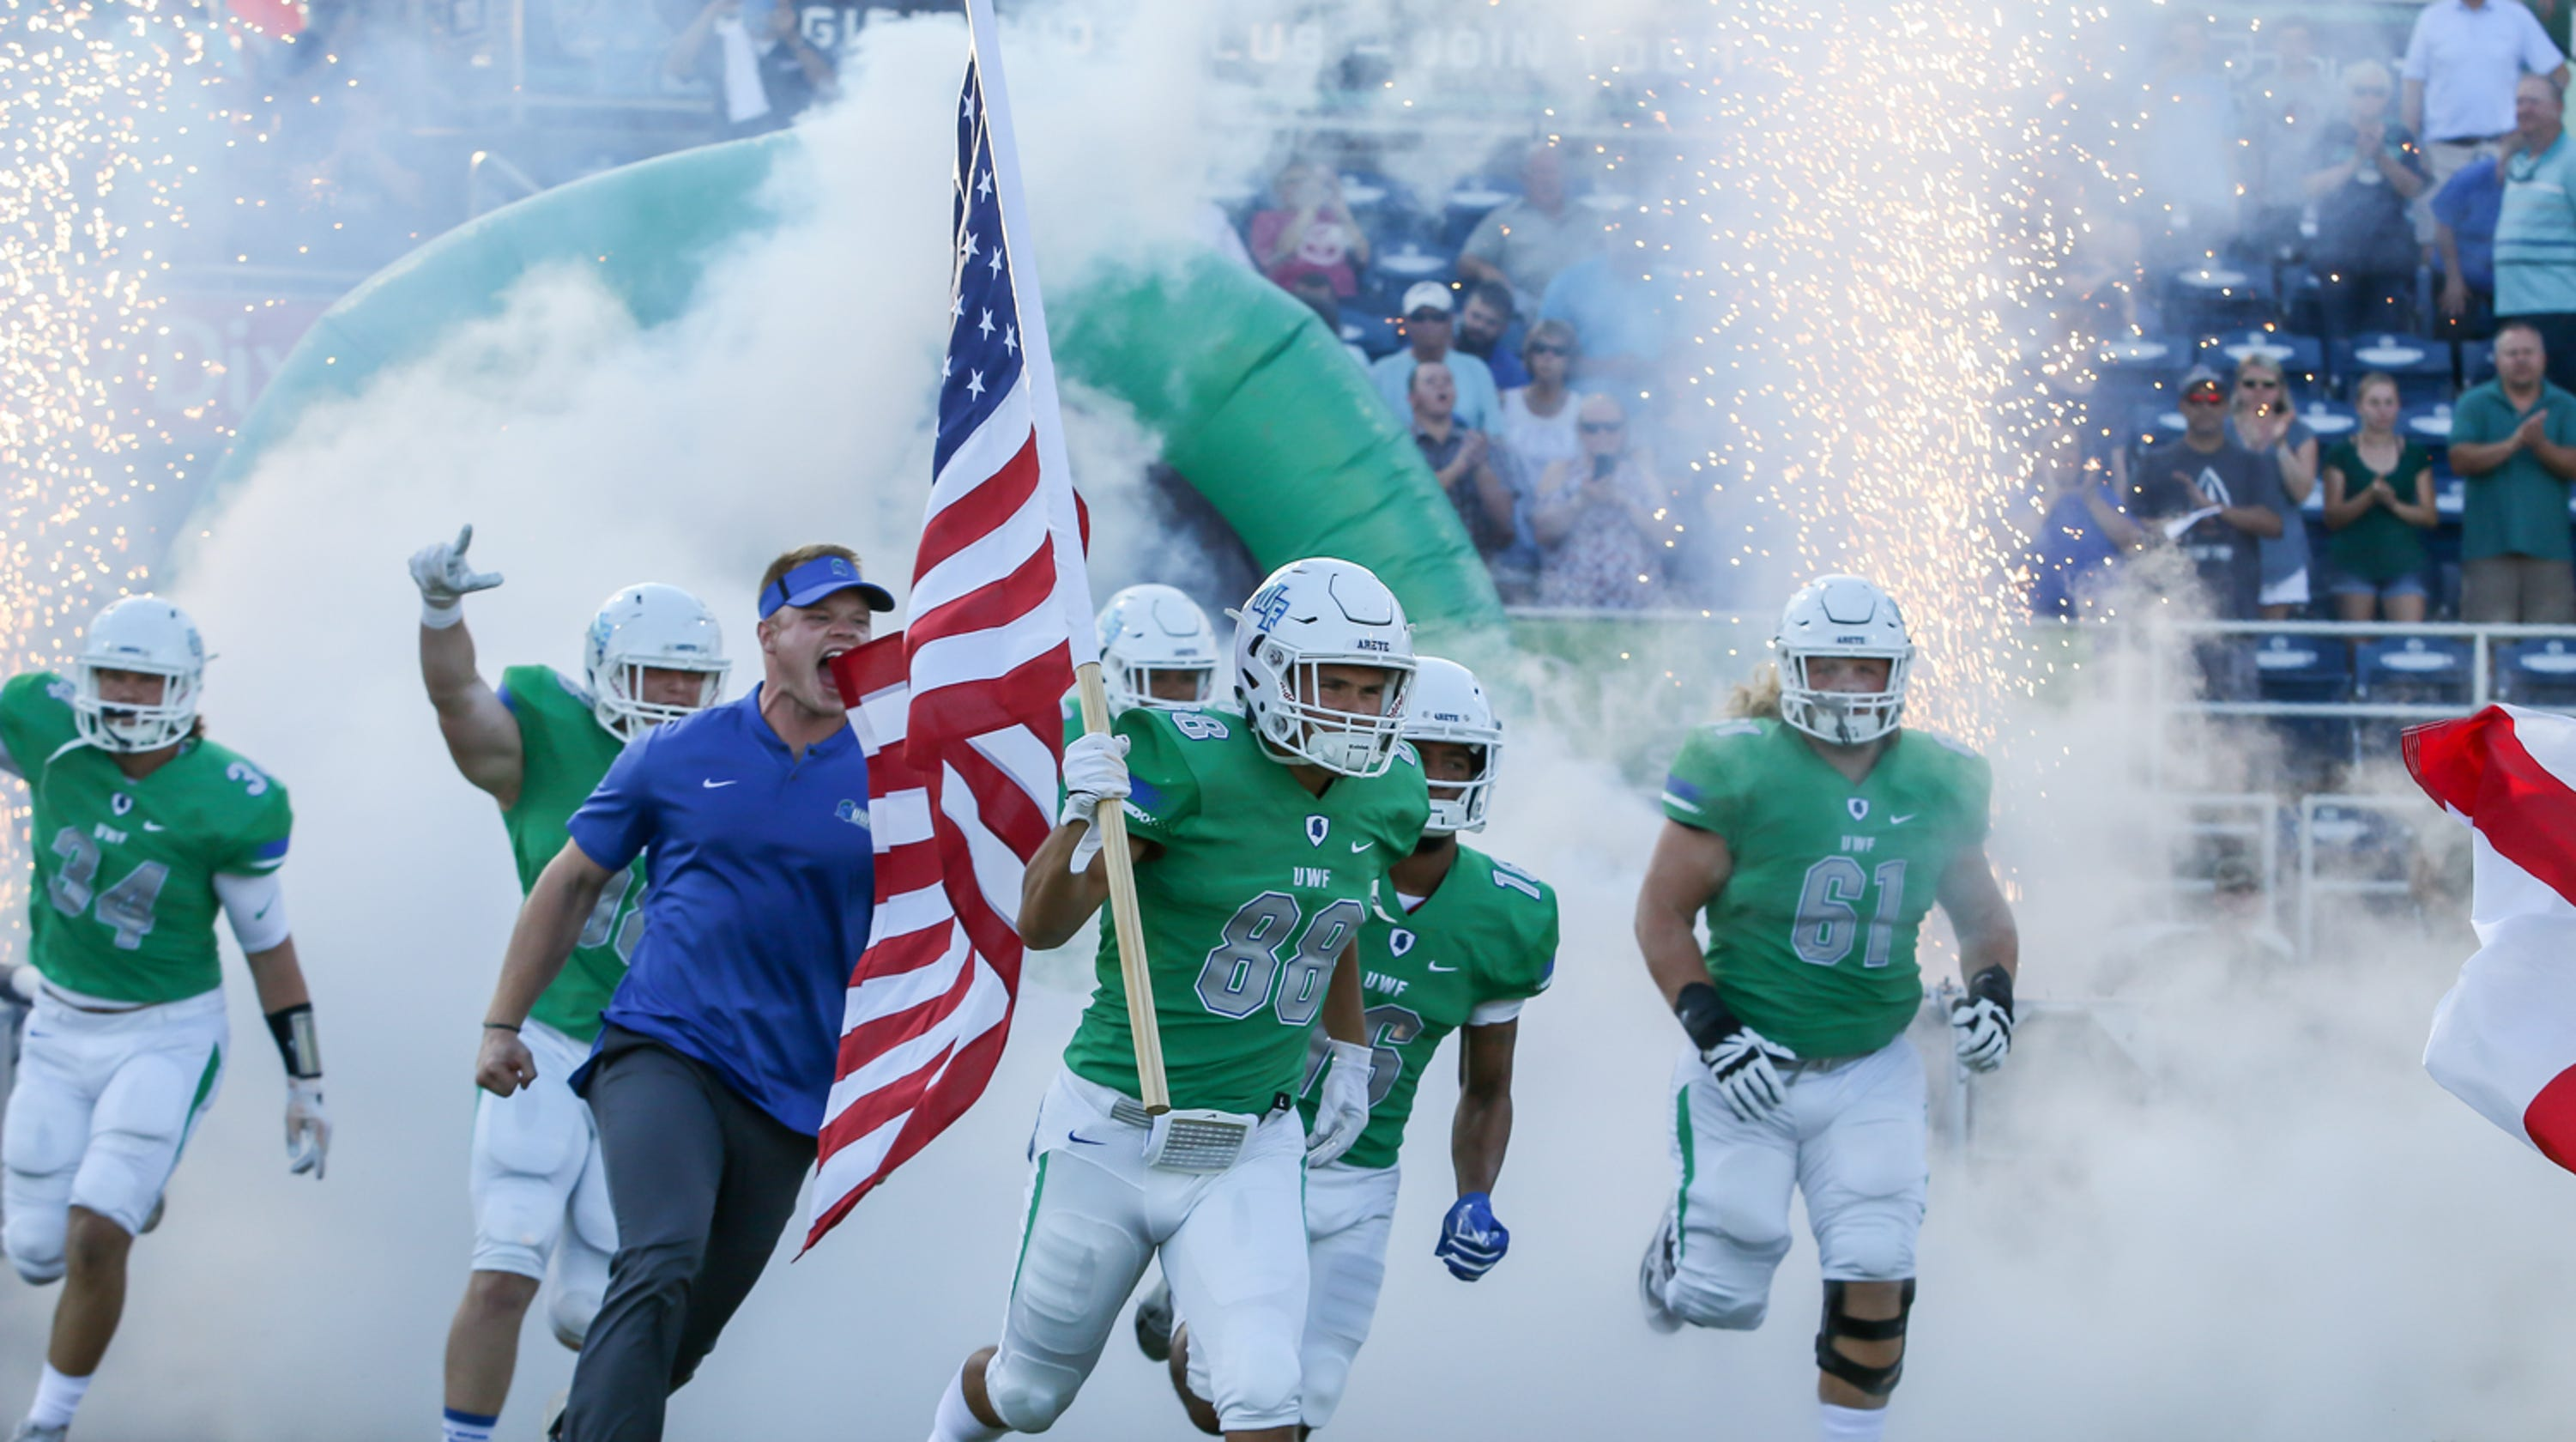 UWF football single-game tickets to go on sale Monday